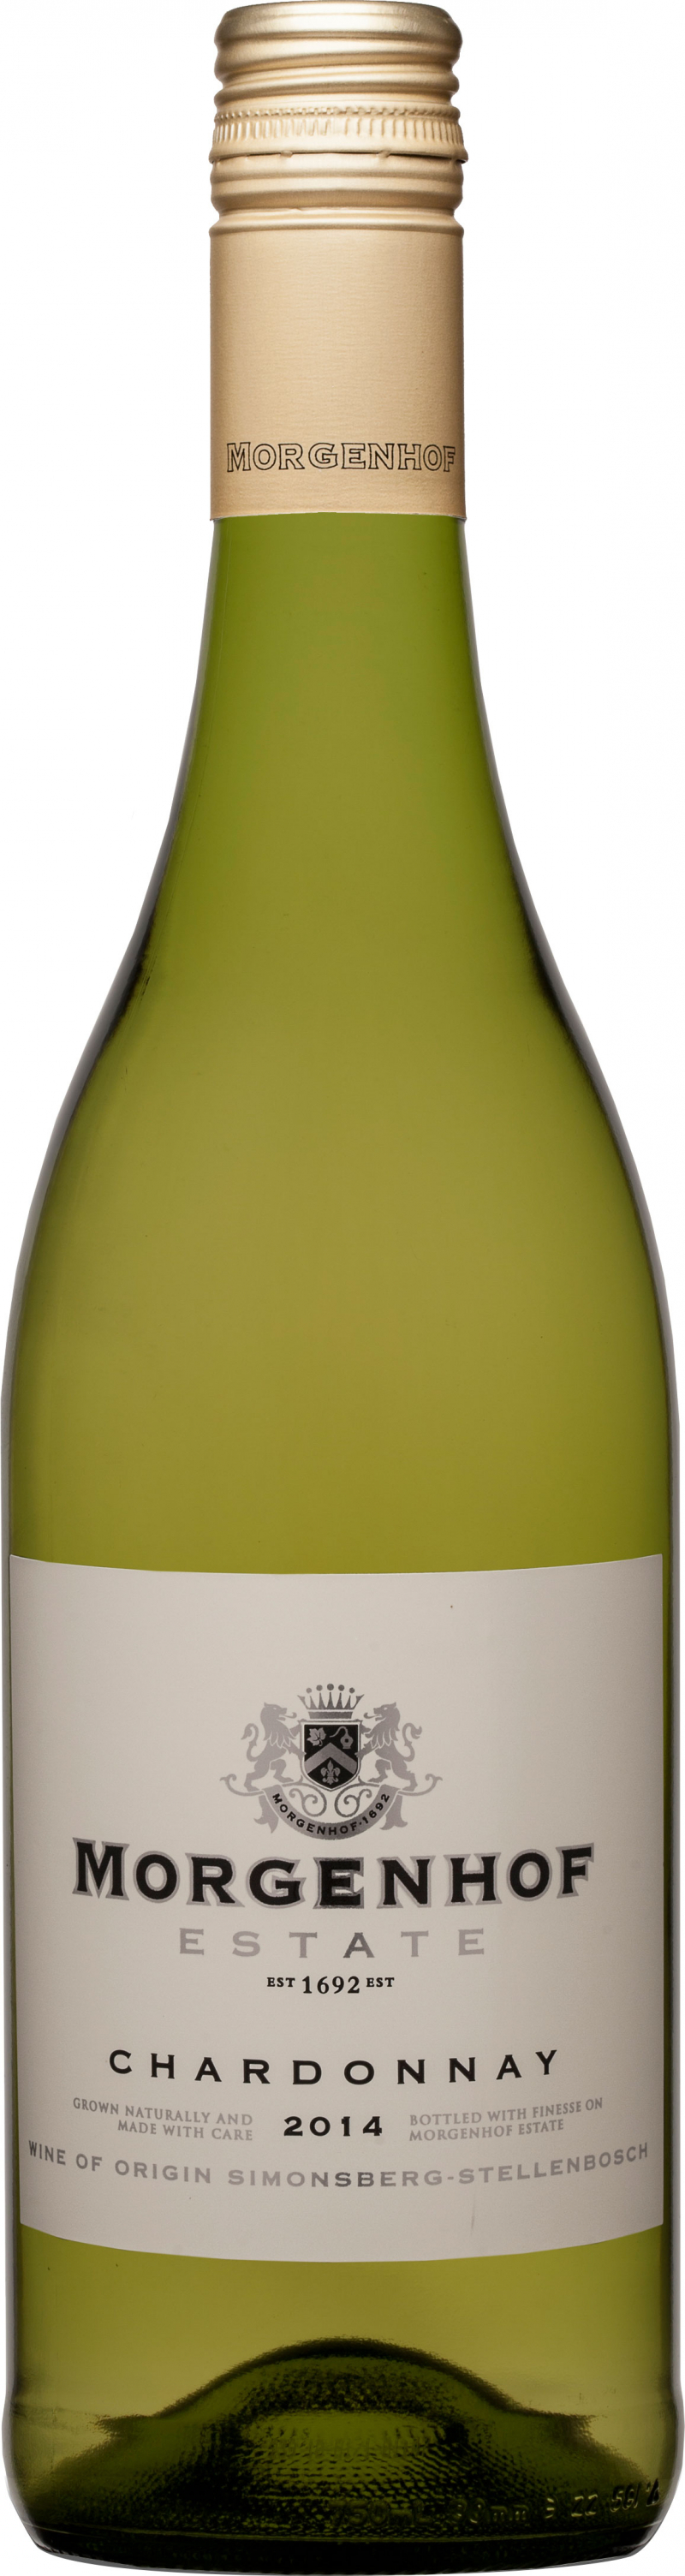 Morgenhof - Chardonnay 2015 (75cl Bottle)